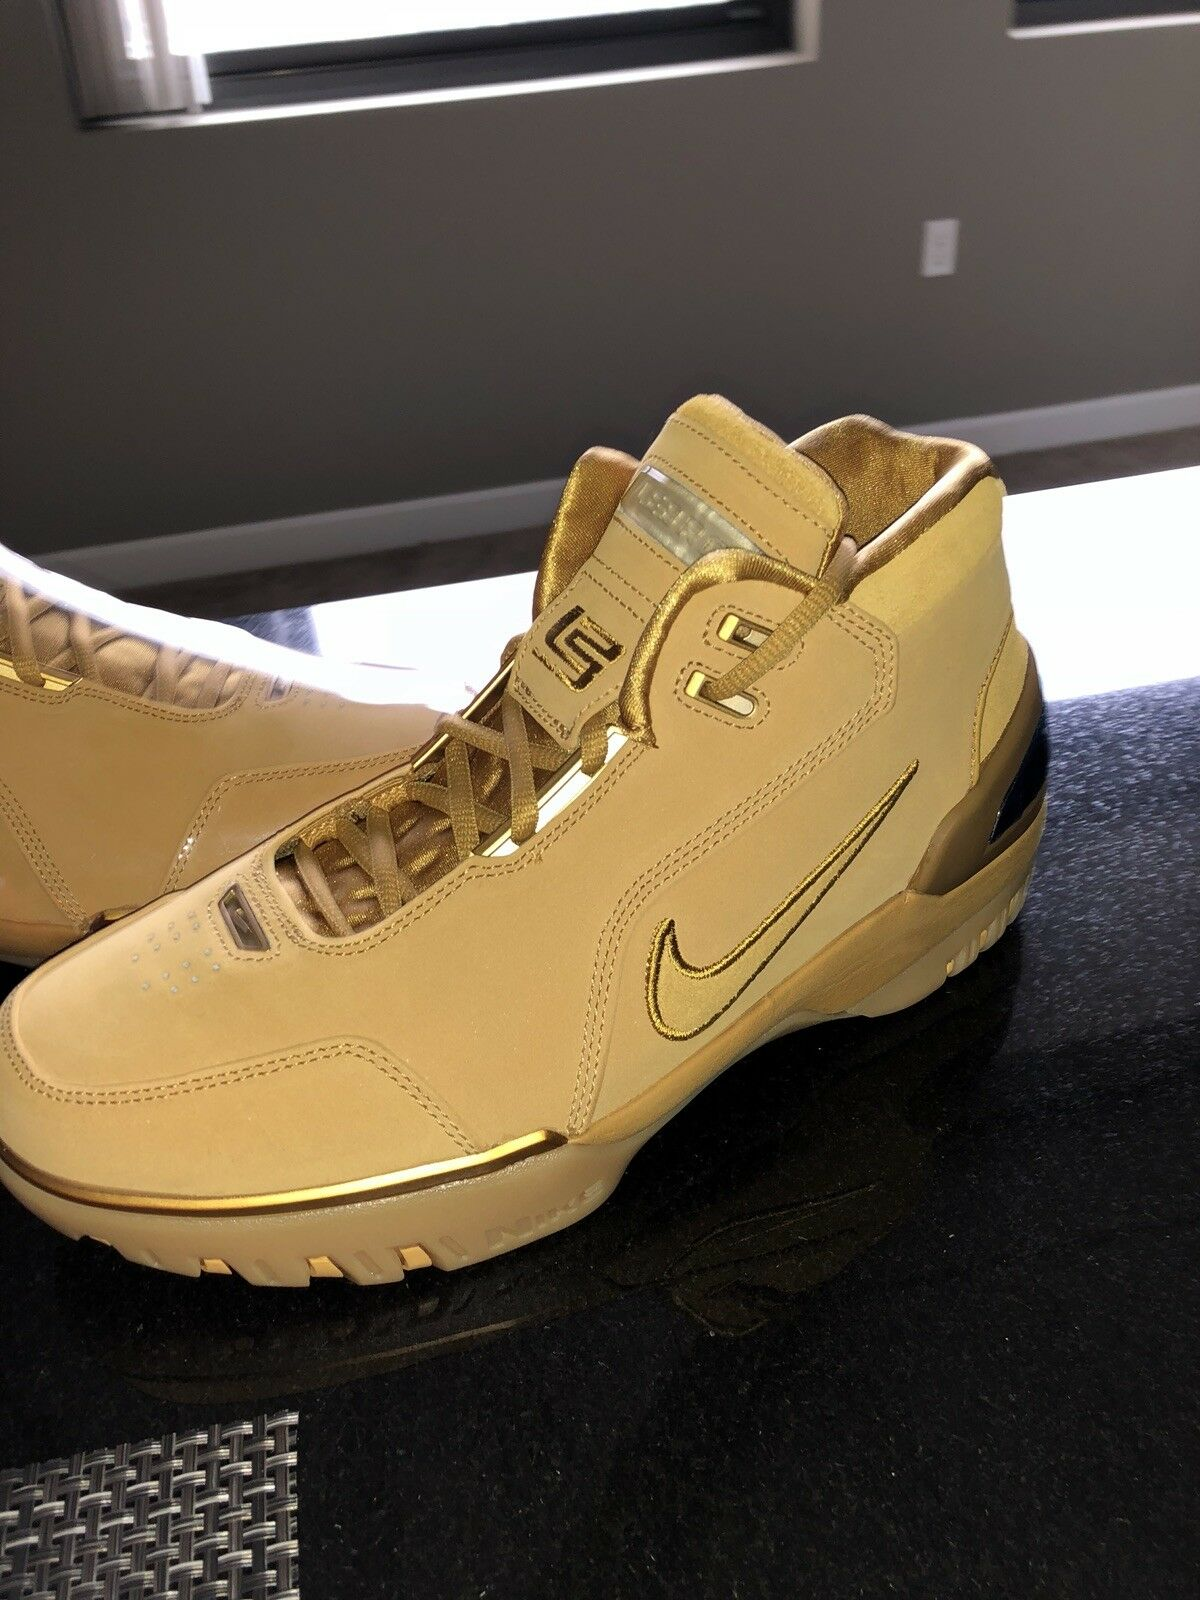 LeBron AZG Retro Wheats  Cheap and fashionable